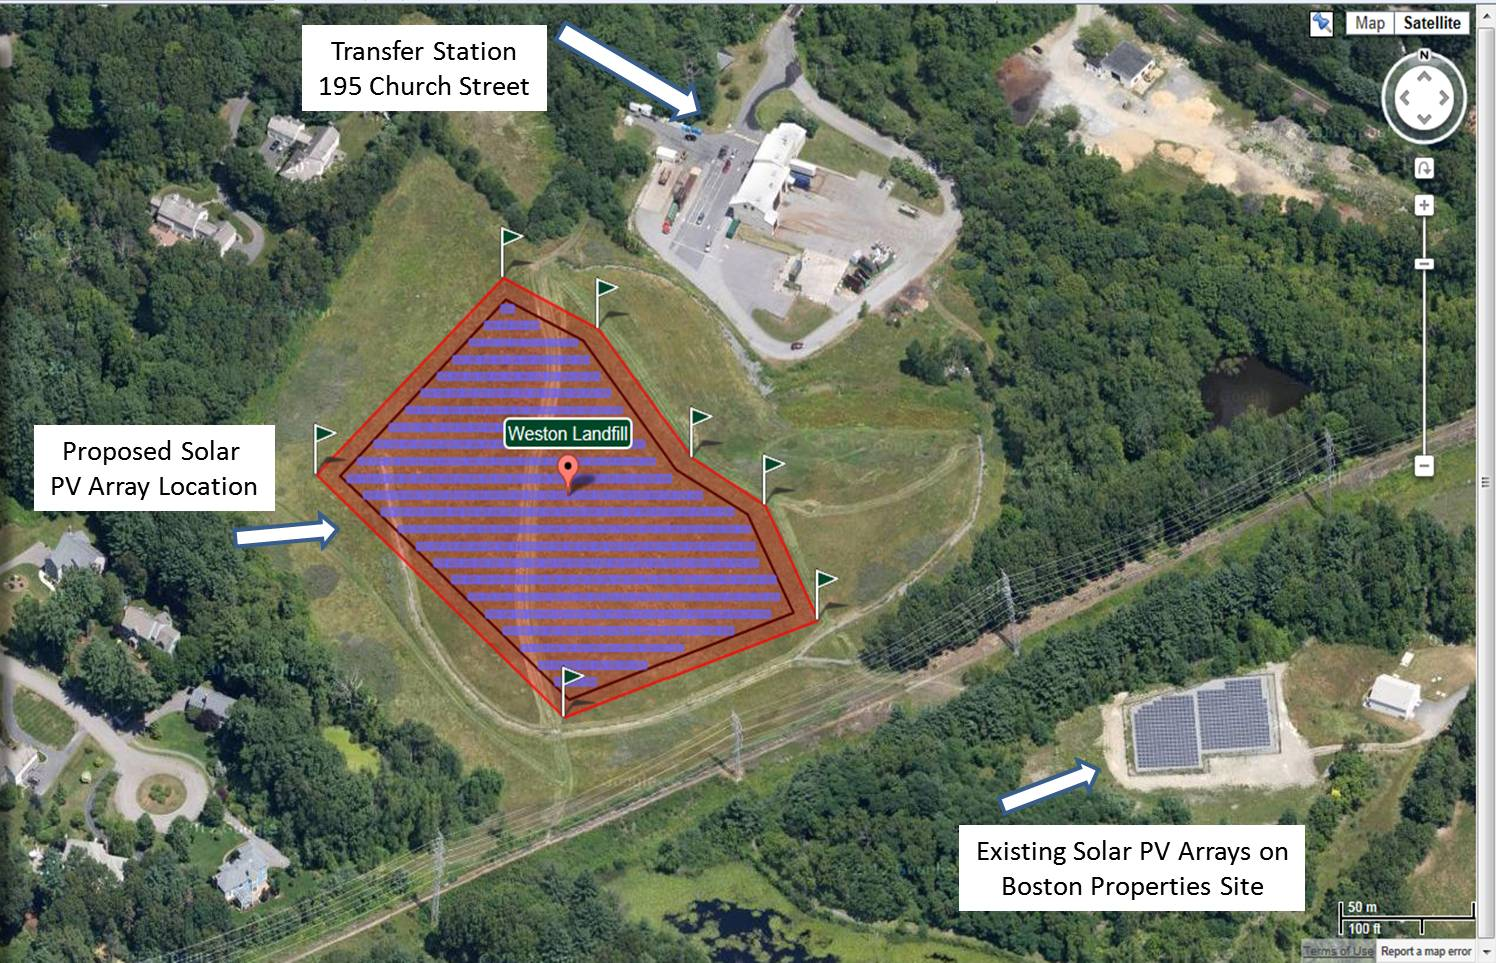 Array map, showing the Transfer Station, existing solar PV arrays, and the proposed location